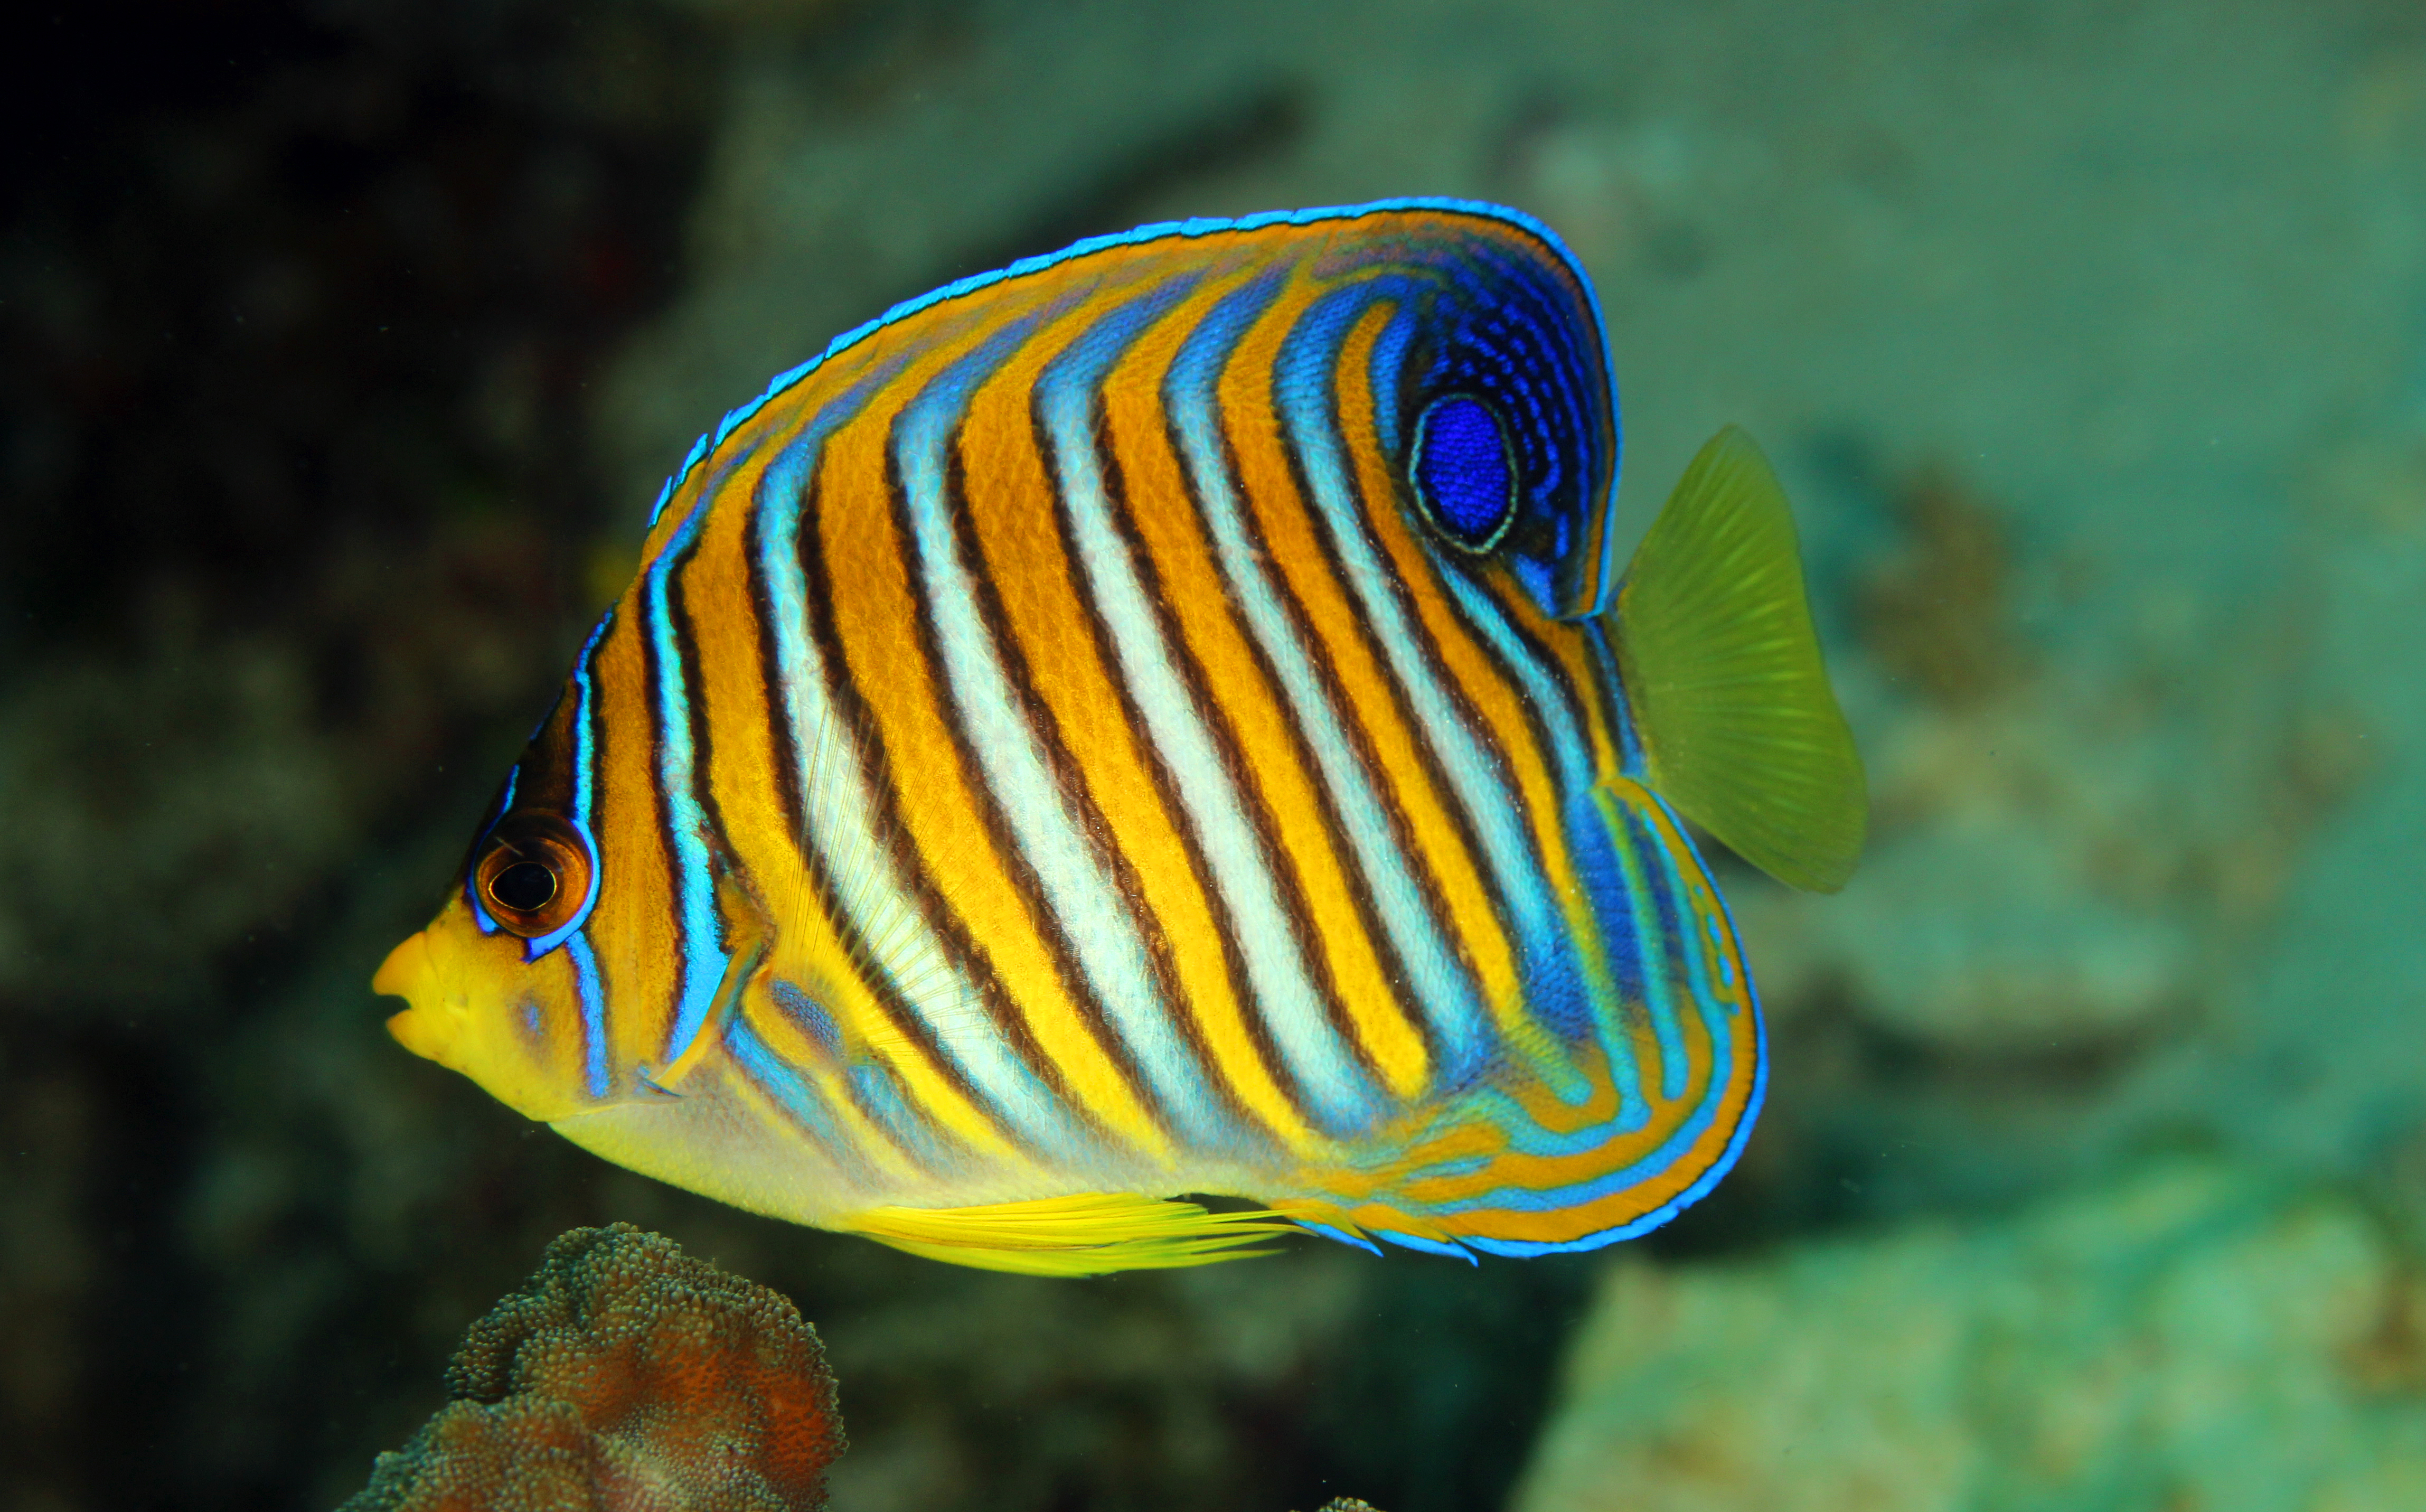 Juvenile Regal Angelfish